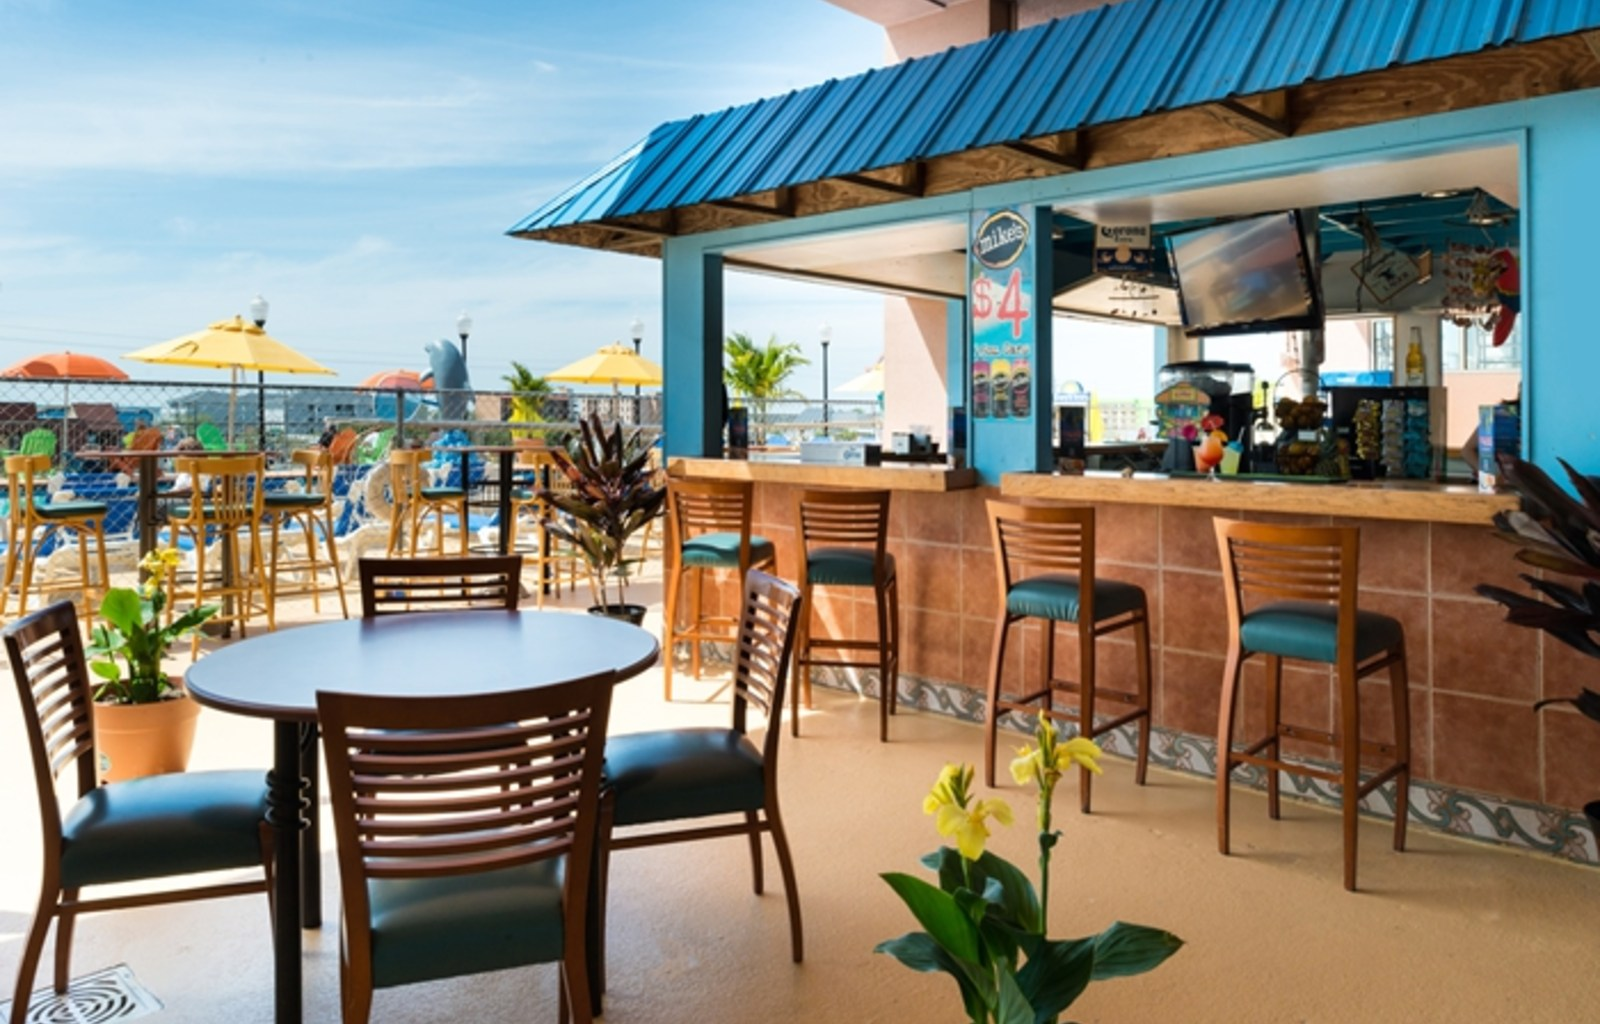 Ocean Front Dining In Ocean City Maryland